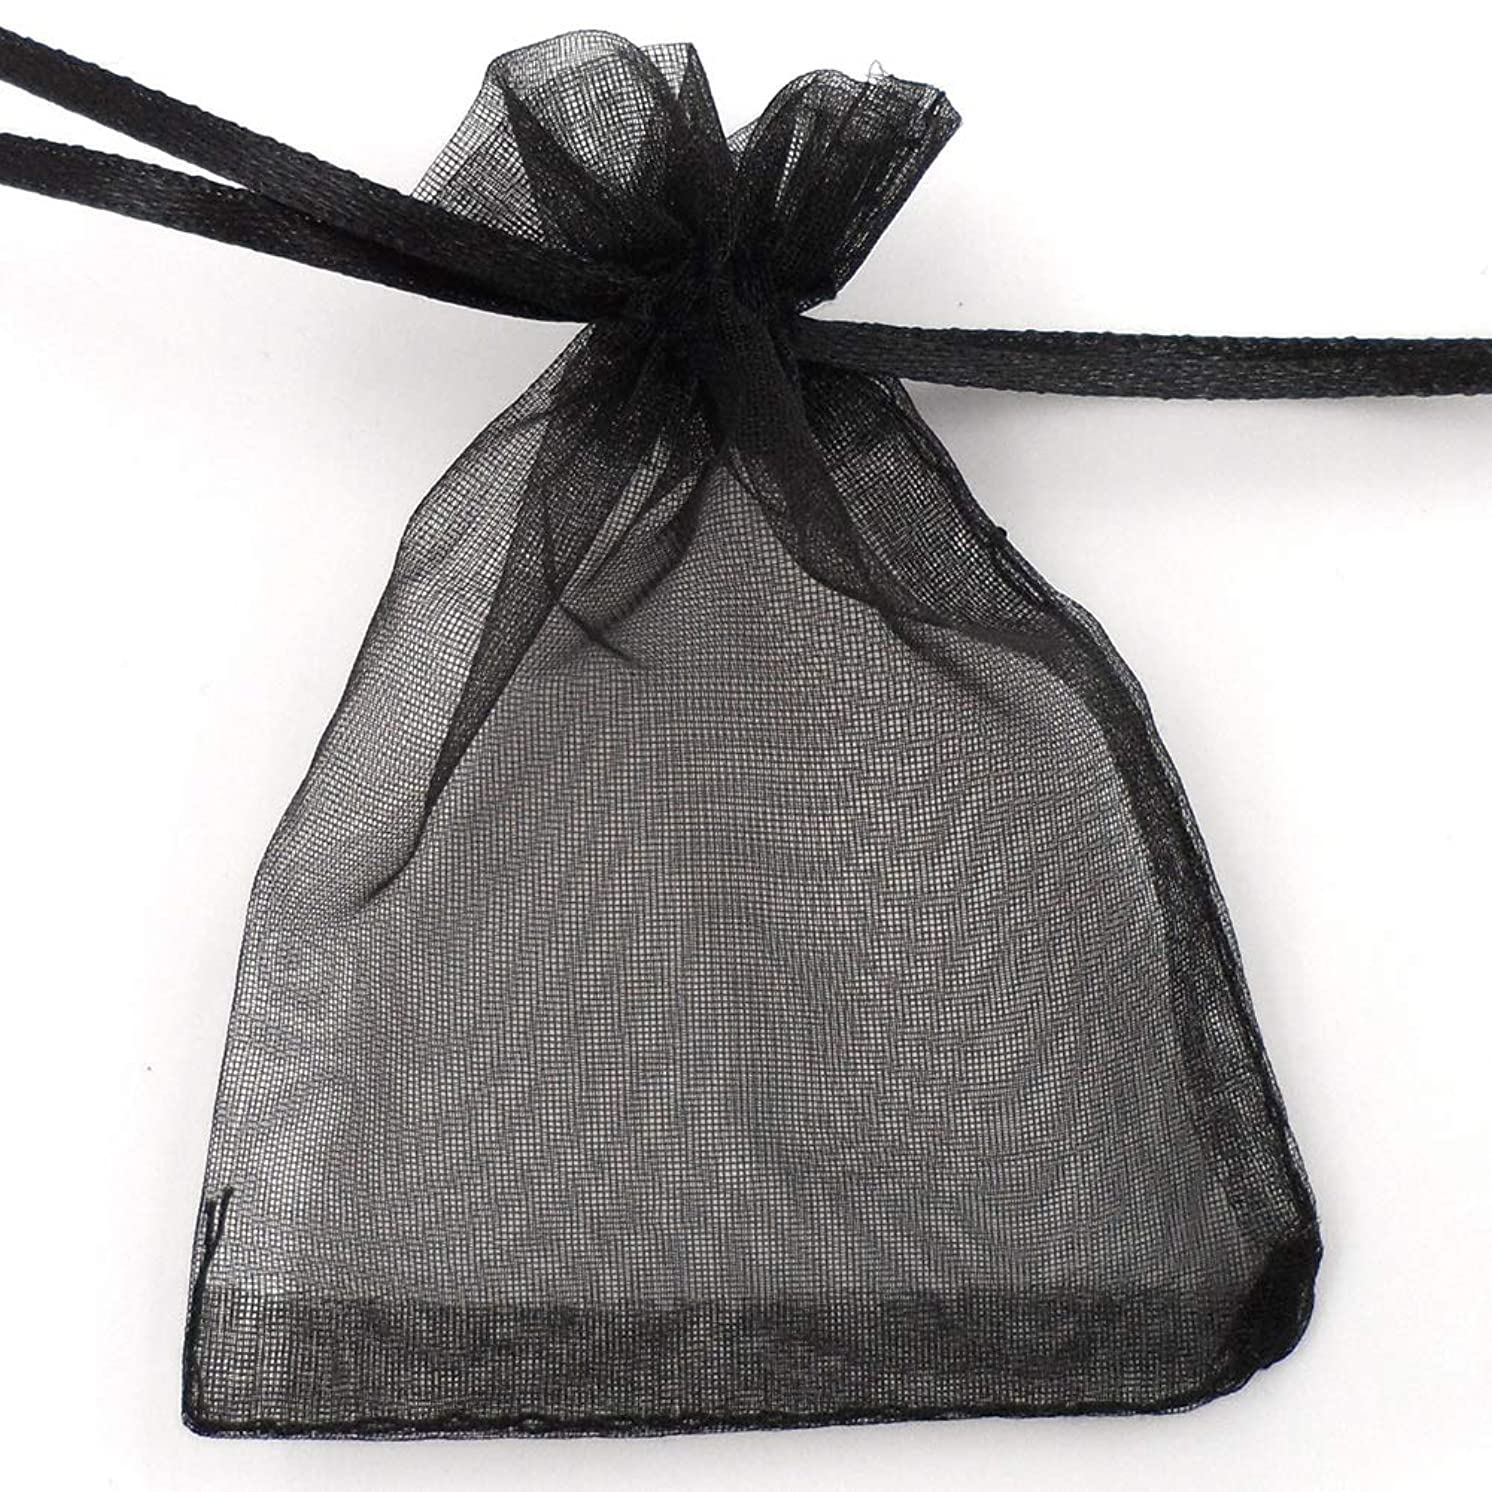 ATCG 200pcs 3x4 Inches Drawstring Organza Pouches Wedding Party Jewelry Favor Gift Candy Bags (Black)